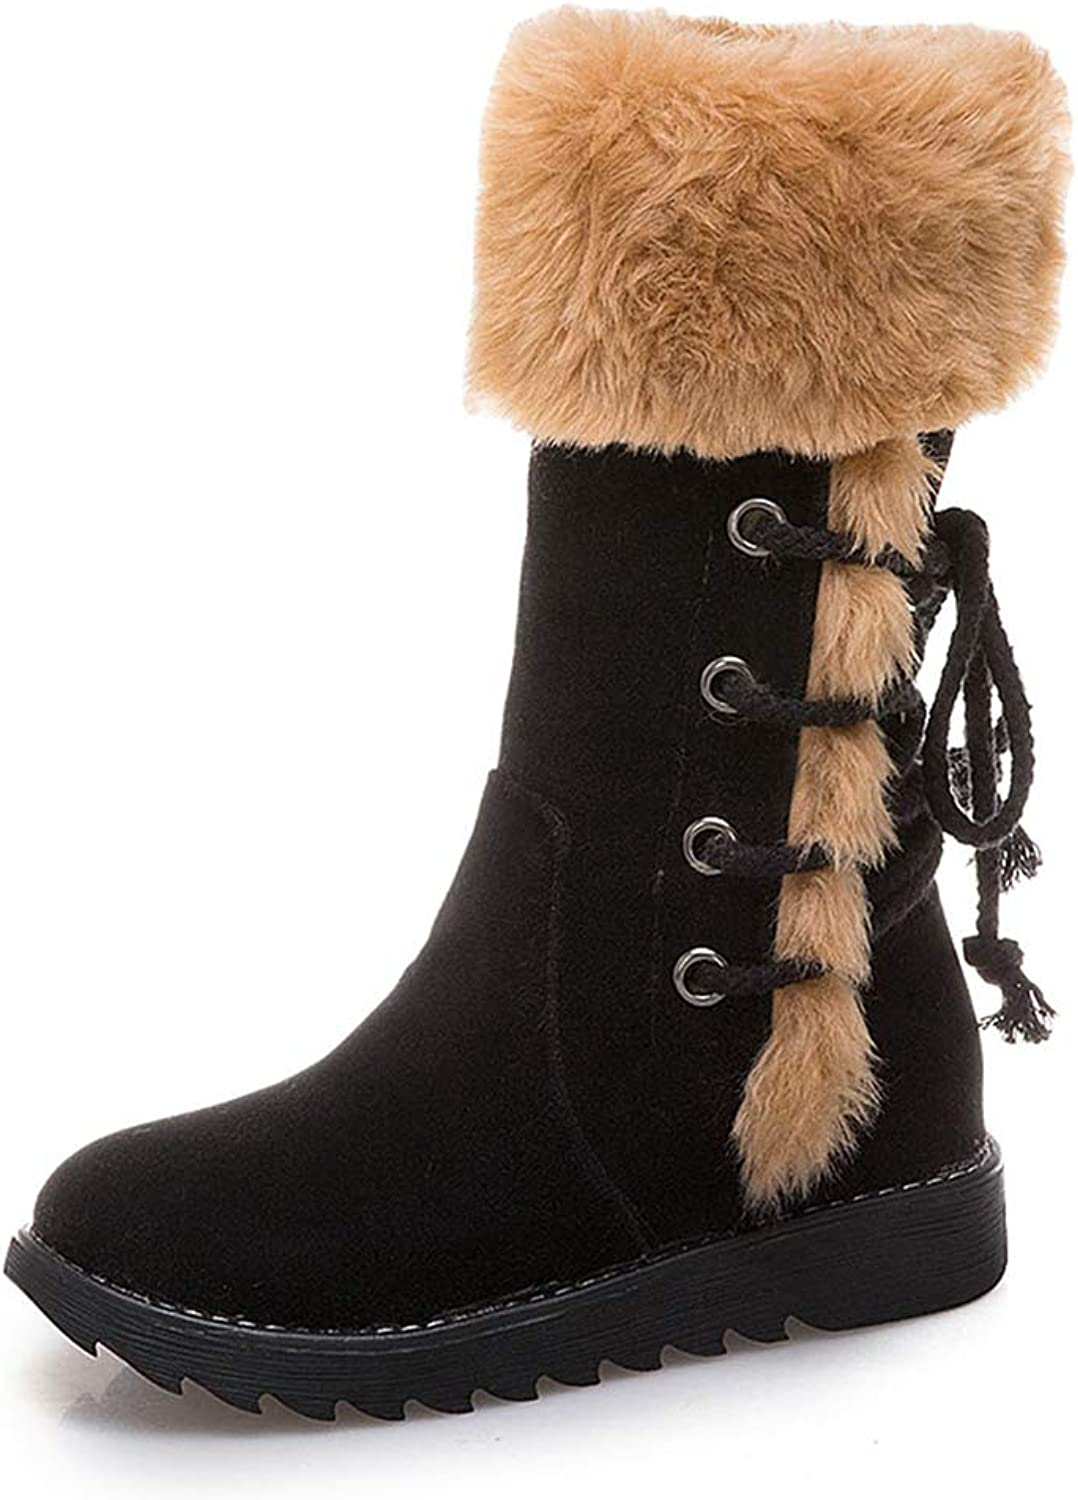 Womens Mid Calf Snow Boots Imitated Suede Upper Winter Short Plush Warm Girls Booties Comfortable Platform shoes